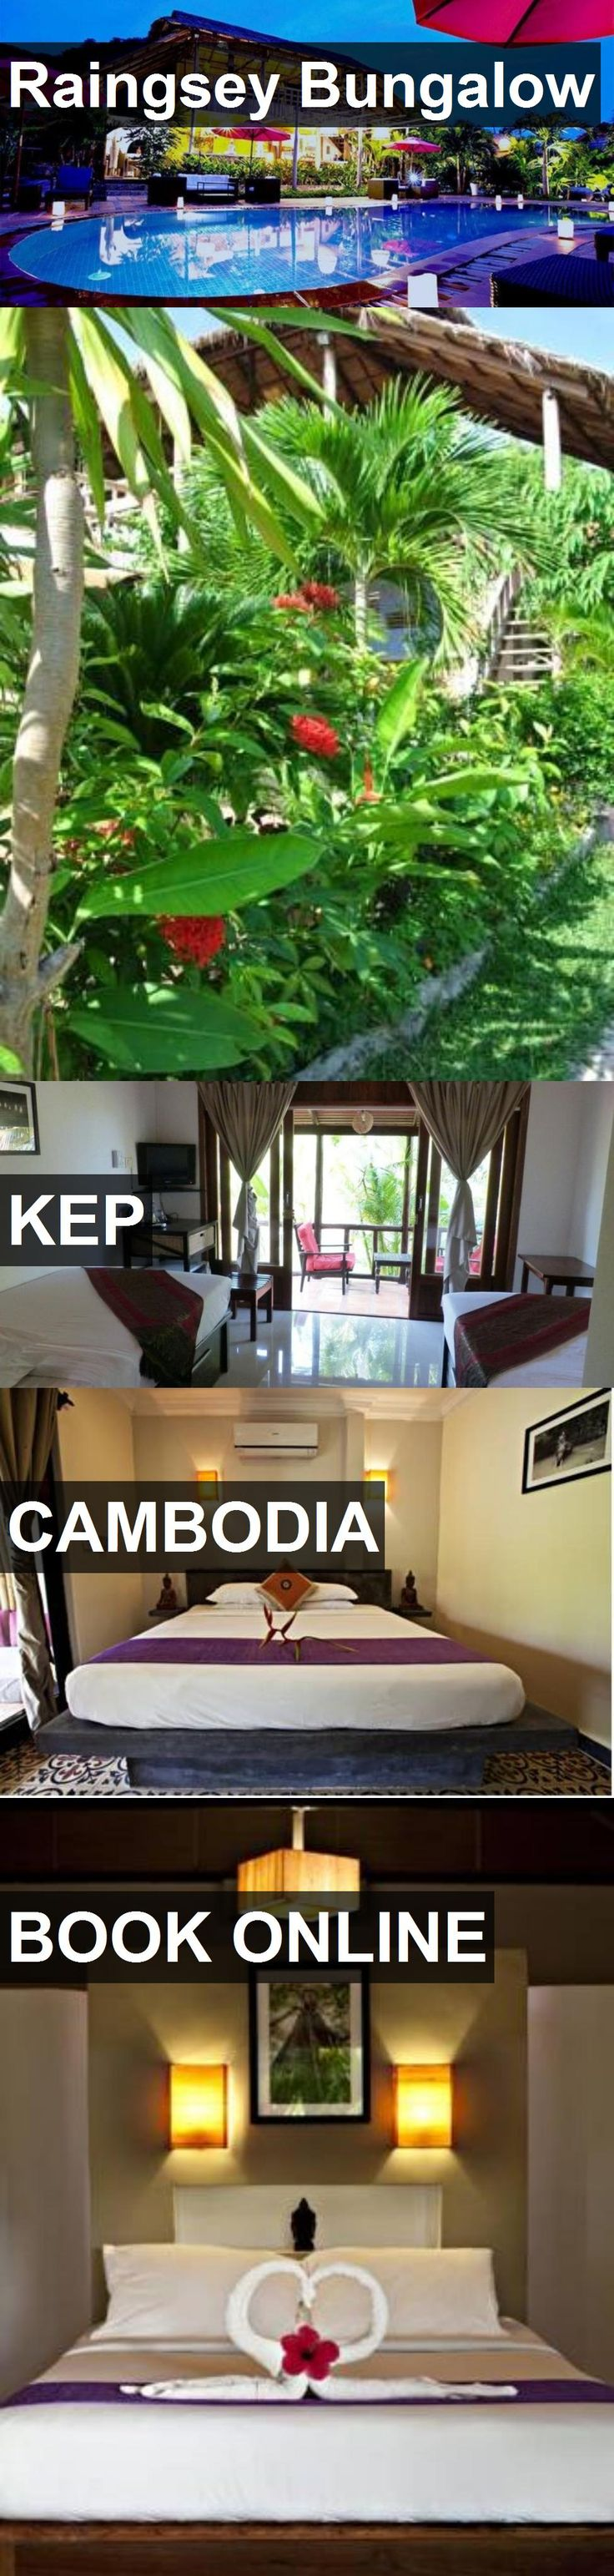 Hotel Raingsey Bungalow in Kep, Cambodia. For more information, photos, reviews and best prices please follow the link. #Cambodia #Kep #RaingseyBungalow #hotel #travel #vacation